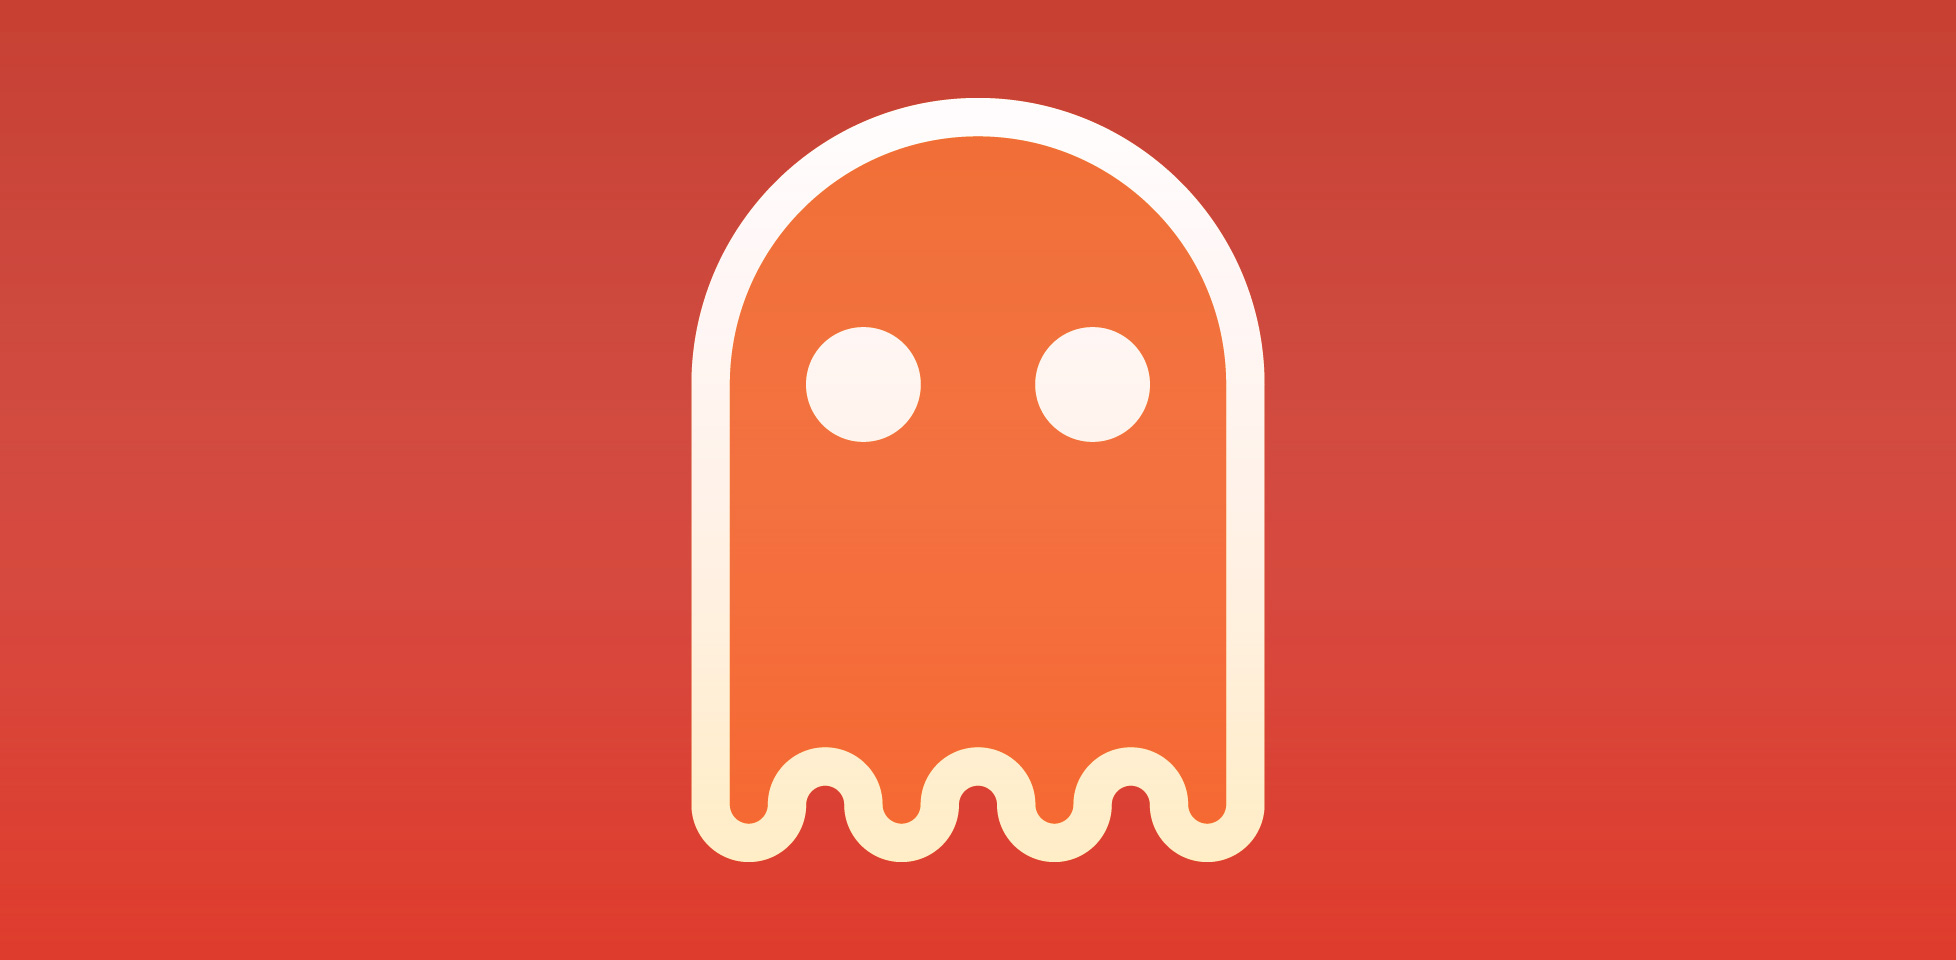 The quick guide to getting started with Ghost